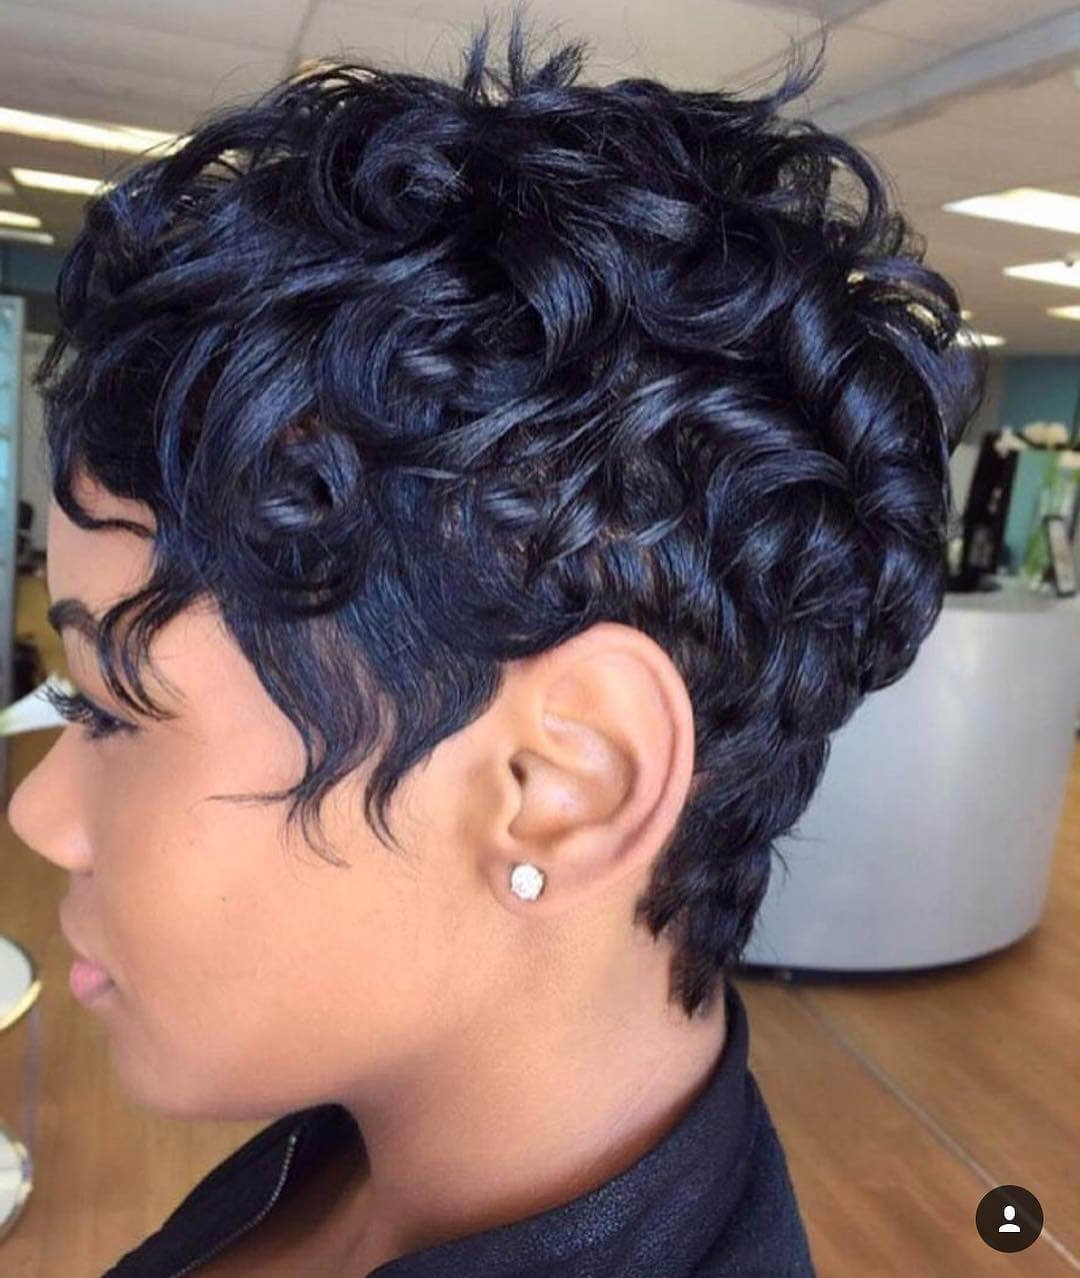 12 Curly Pixie Cut For Short Or Medium Length Hair Regarding Curly Black Tapered Pixie Hairstyles (View 7 of 25)